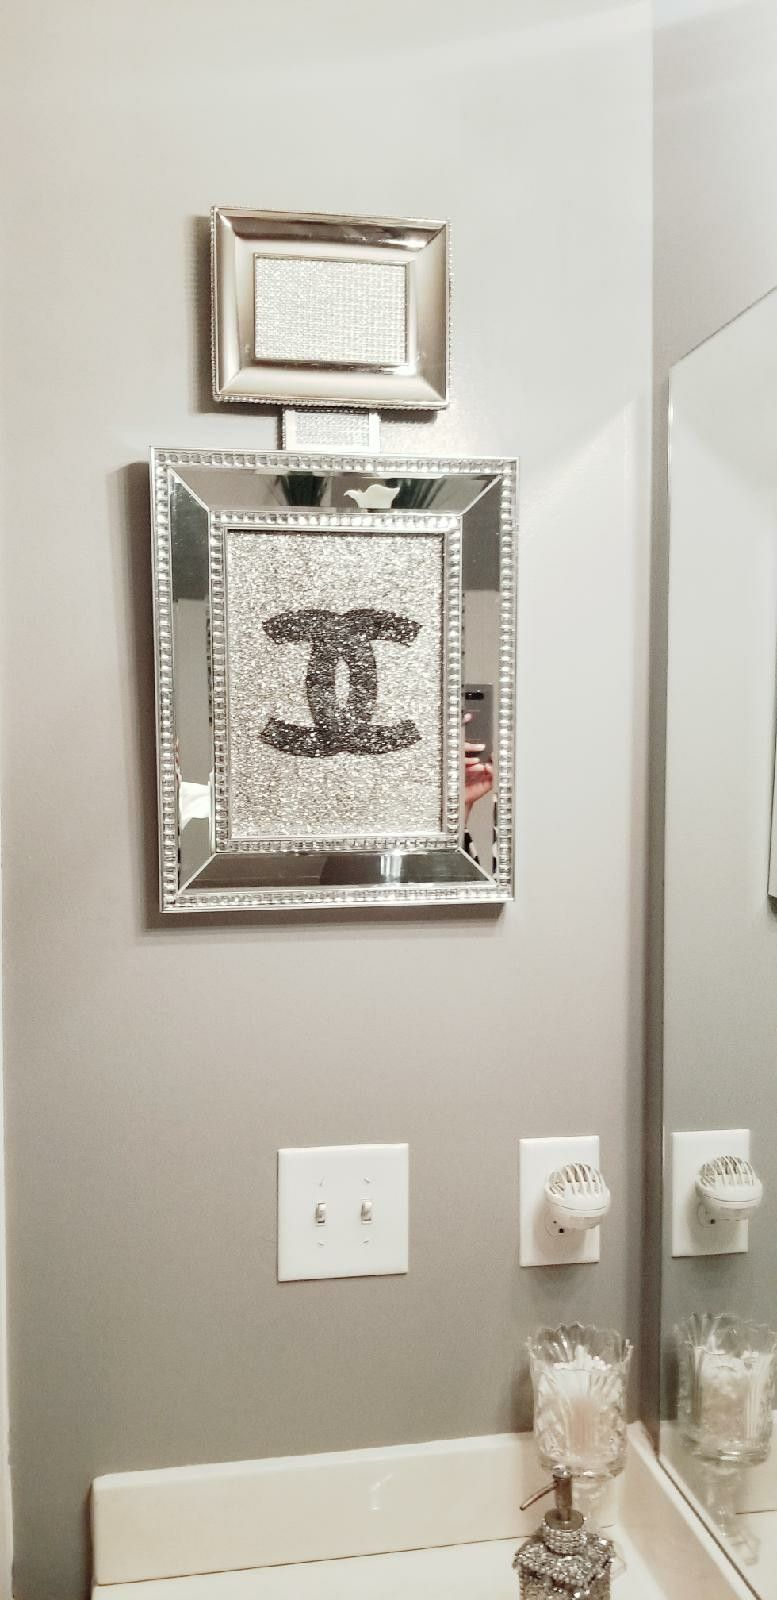 Chanel Bottle Bathroom Wall Decor Created From Picture Frames